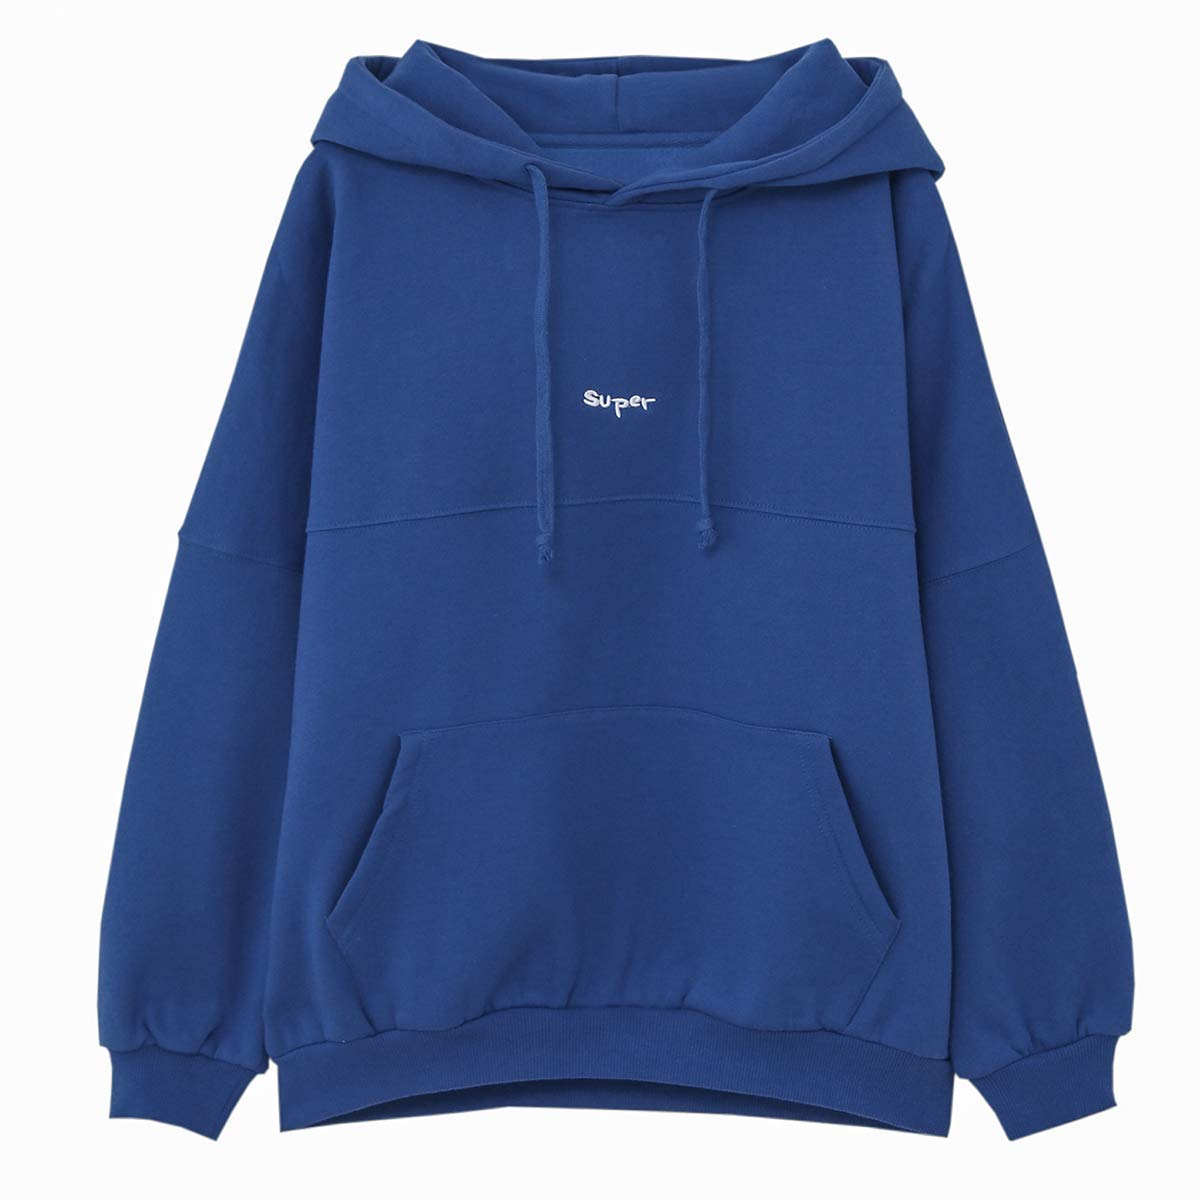 Fashion Sweatshirts (Blue, Medium)